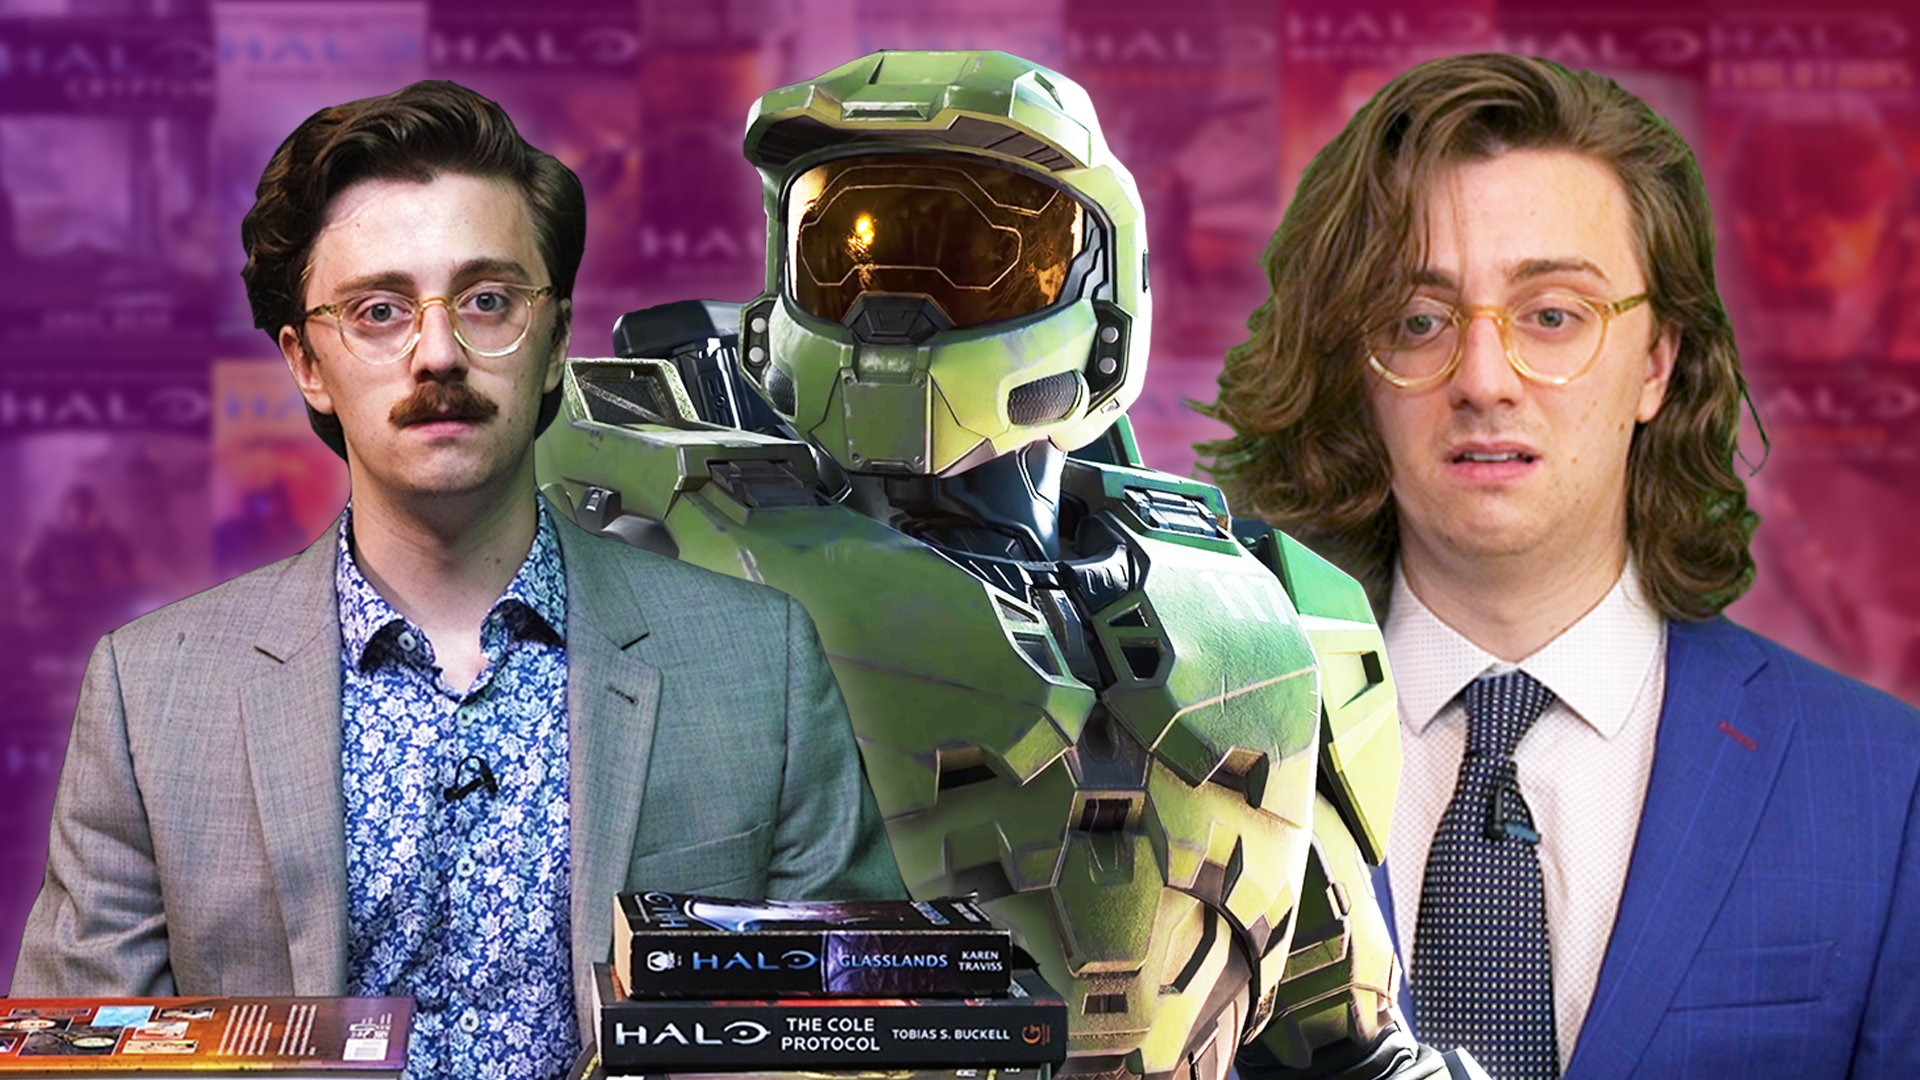 An image of Brian David Gilbert from July 2019 seated behind a bunch of Halo novels. Behind him is the Master Chief, and behind the Master Chief is another image of Brian looking sad from July 2020.